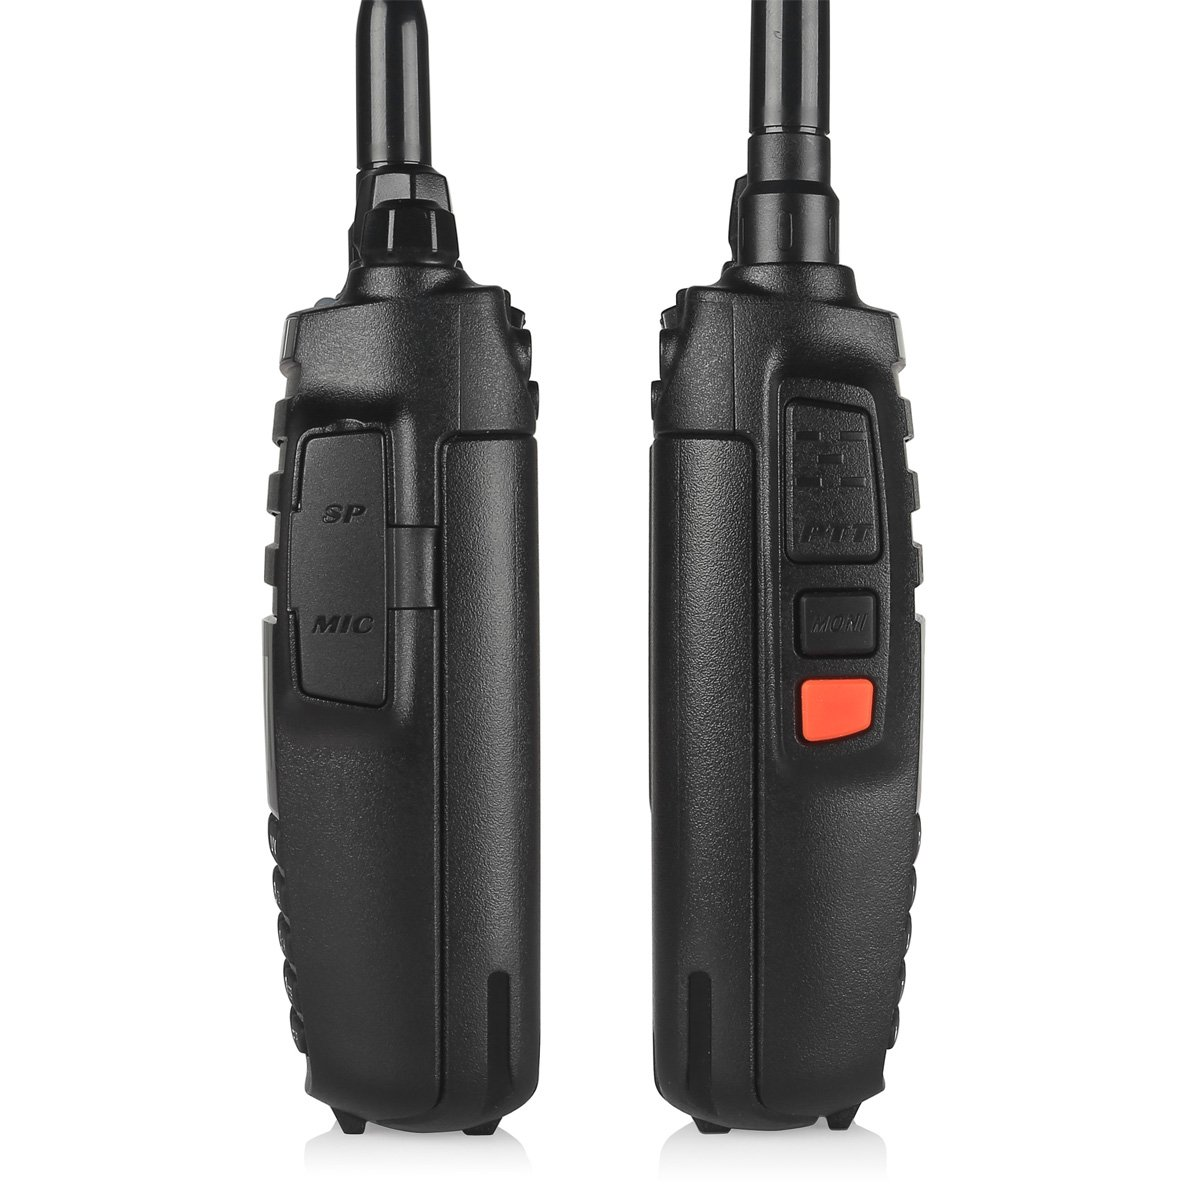 Tyt Uv8000e 10w High Power Dual Band Vhf Uhf Two Way Earphone Ht Cina Radio Ham Walkie Talkie With Cross Repeater Function 3600mah Battery Transceiver